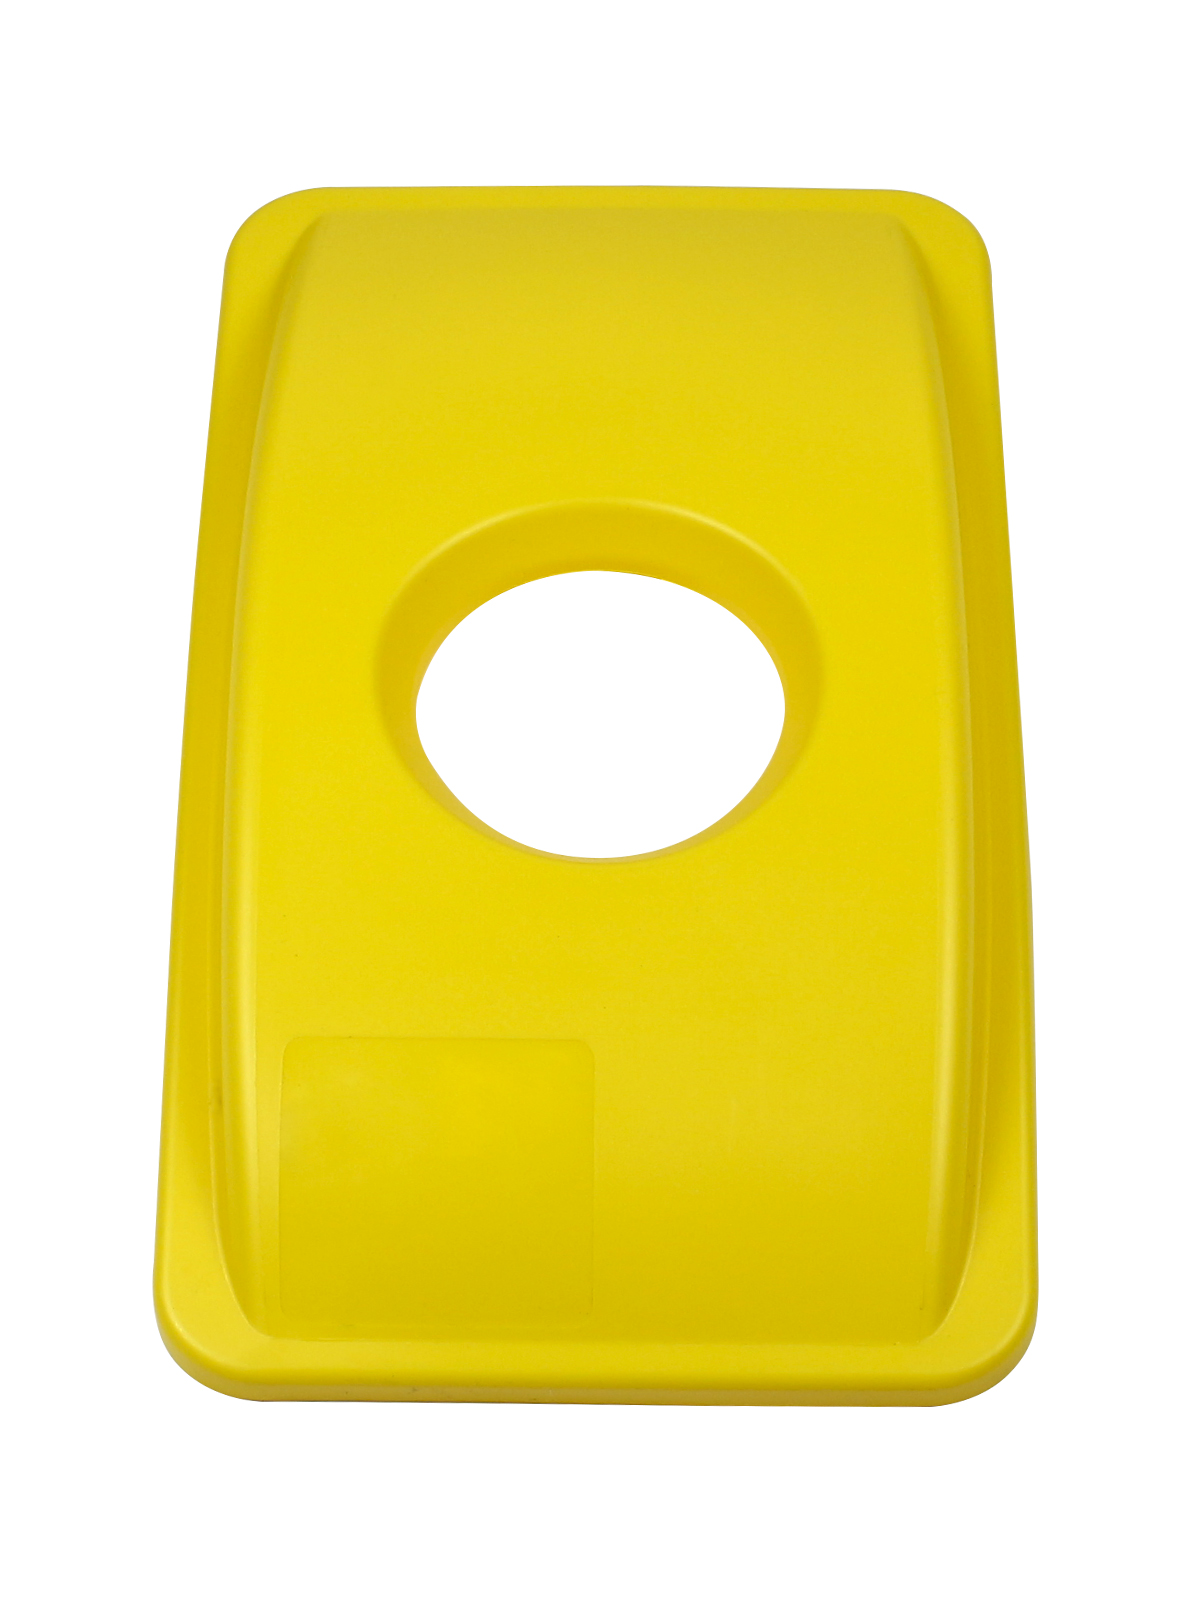 WASTE WATCHER - Single - Lid - Circle - Yellow